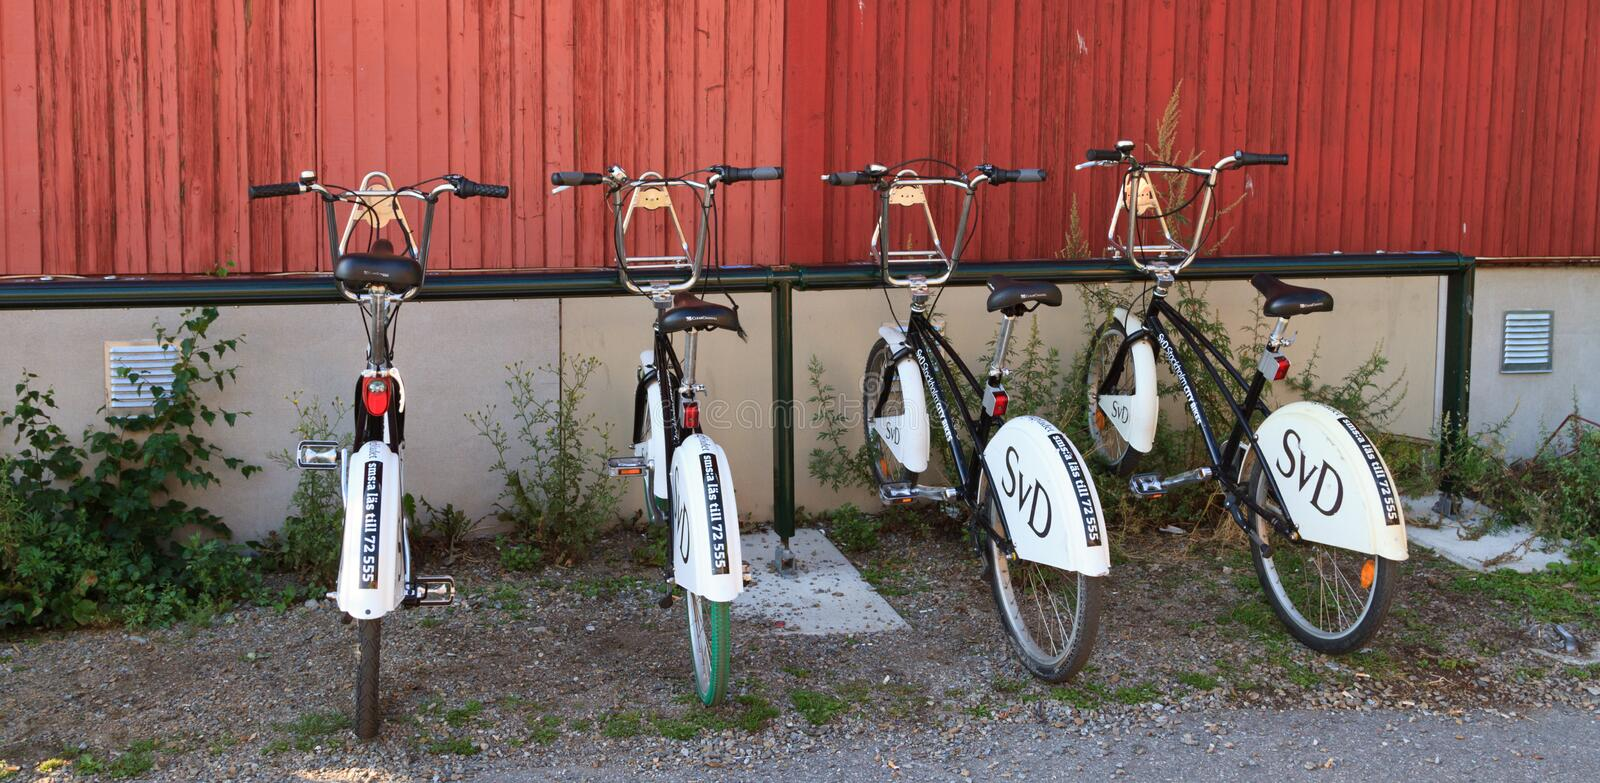 Community bikes in Stockholm royalty free stock image